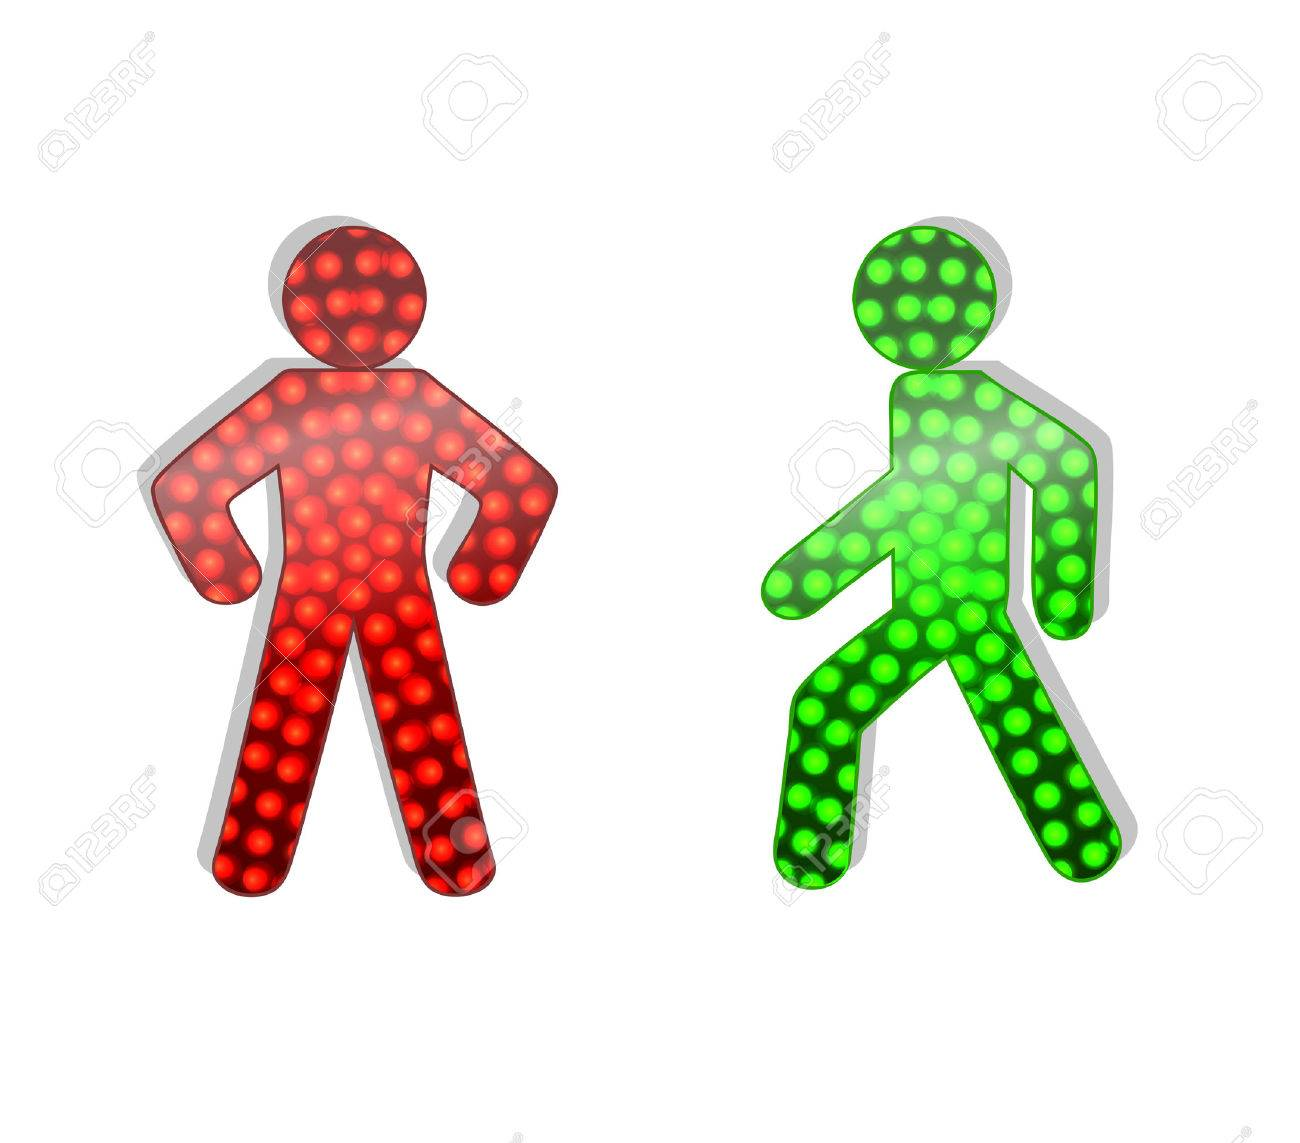 pedestrian traffic lights red and green. Illustration on white background - 38919394